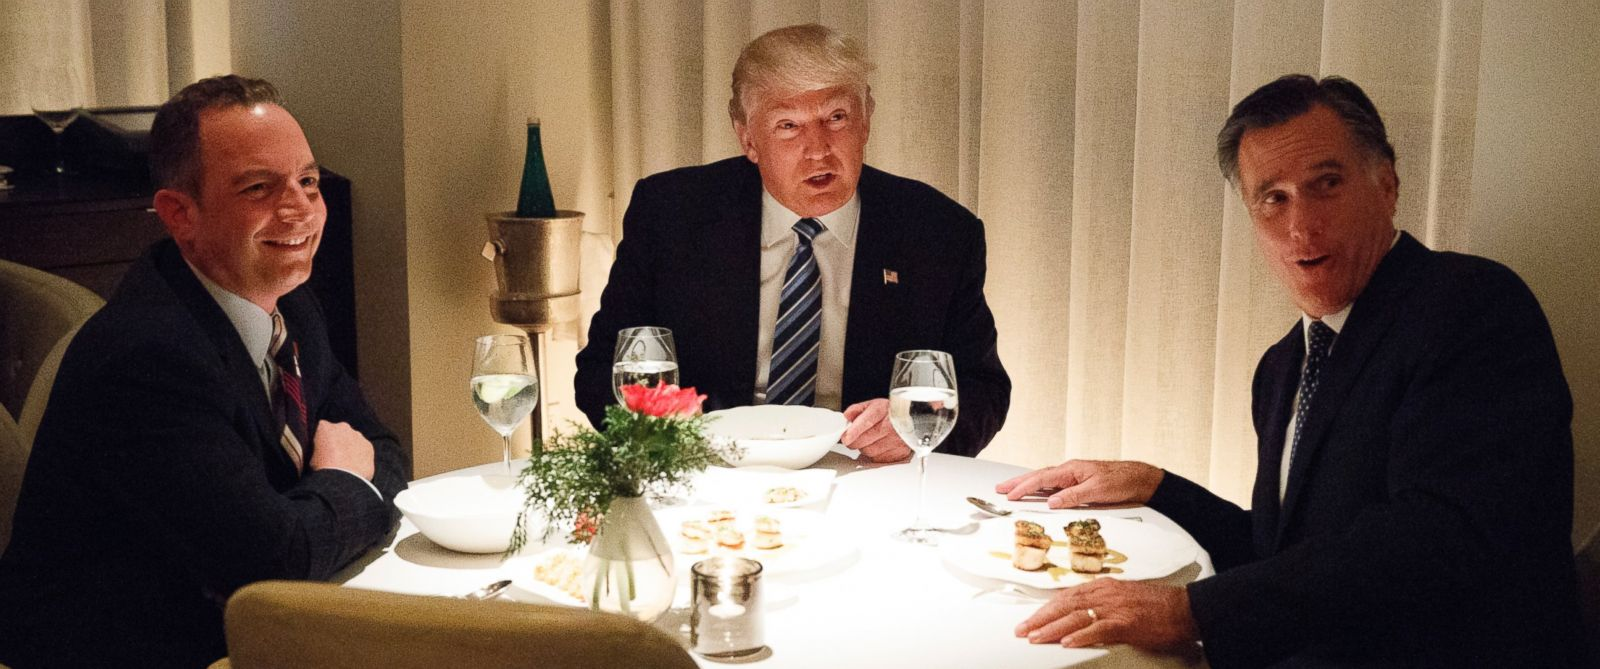 PHOTO: Donald Trump, center, eats dinner with Mitt Romney, right, and Trump Chief of Staff Reince Priebus at Jean-Georges restaurant, Nov. 29, 2016, in New York.